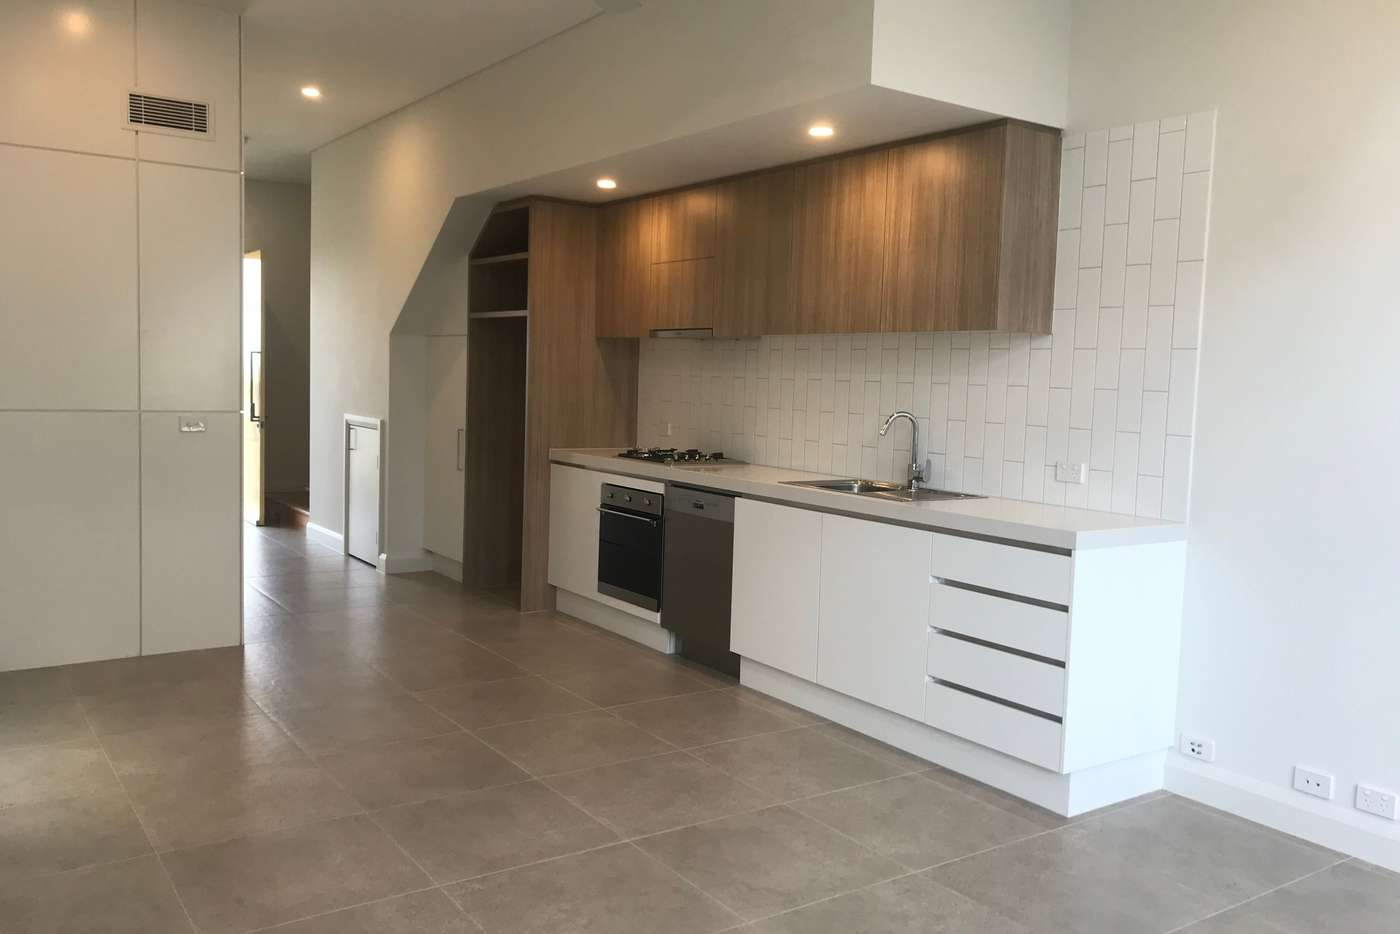 Main view of Homely house listing, 30 Anchorage Parade, Shell Cove NSW 2529